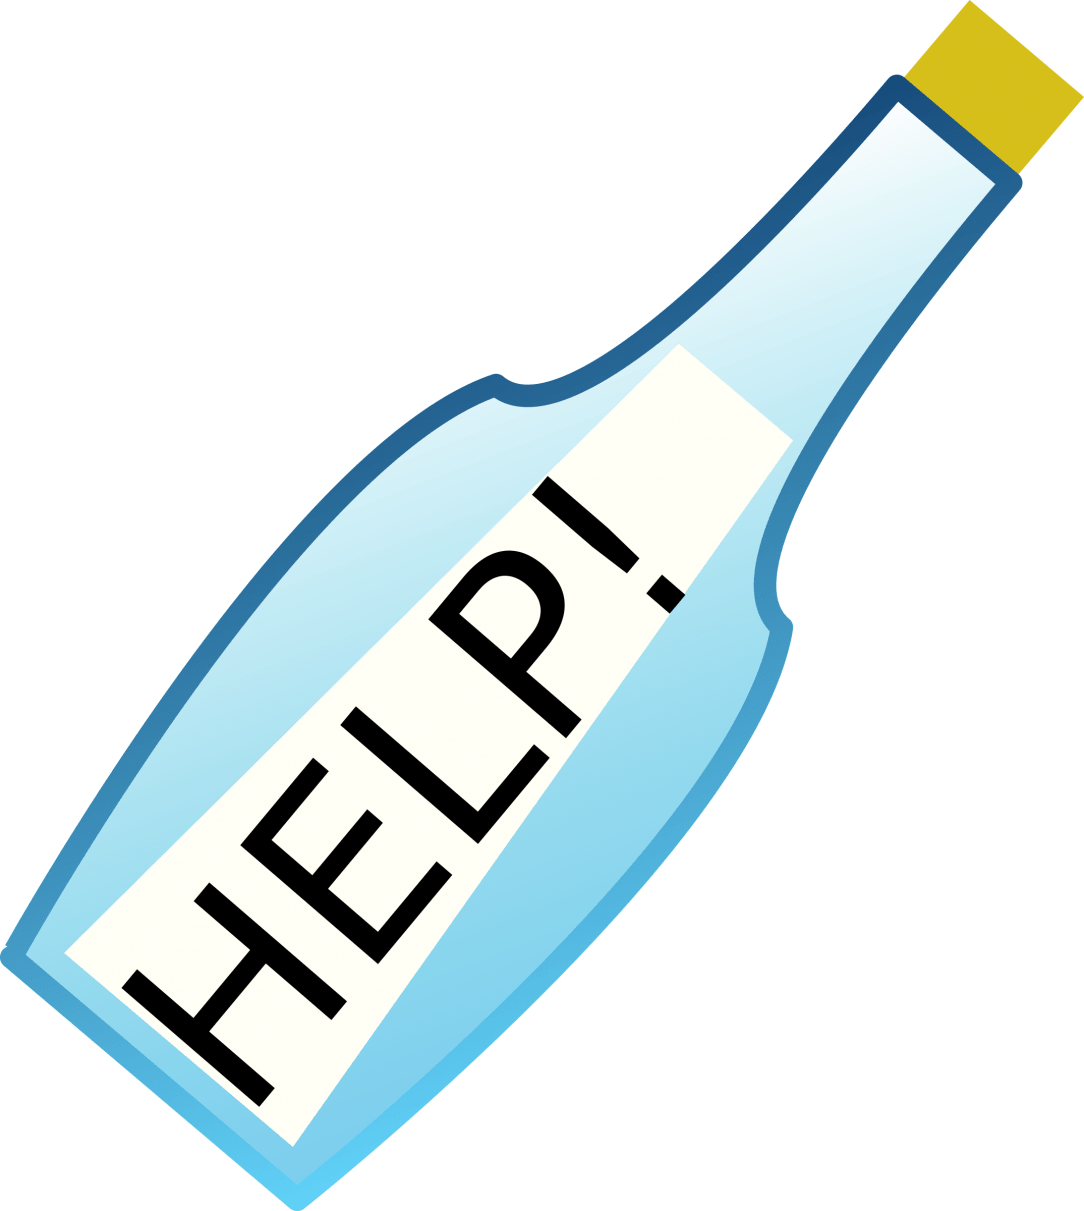 Help! to Stop Drinking , Message in a bottle